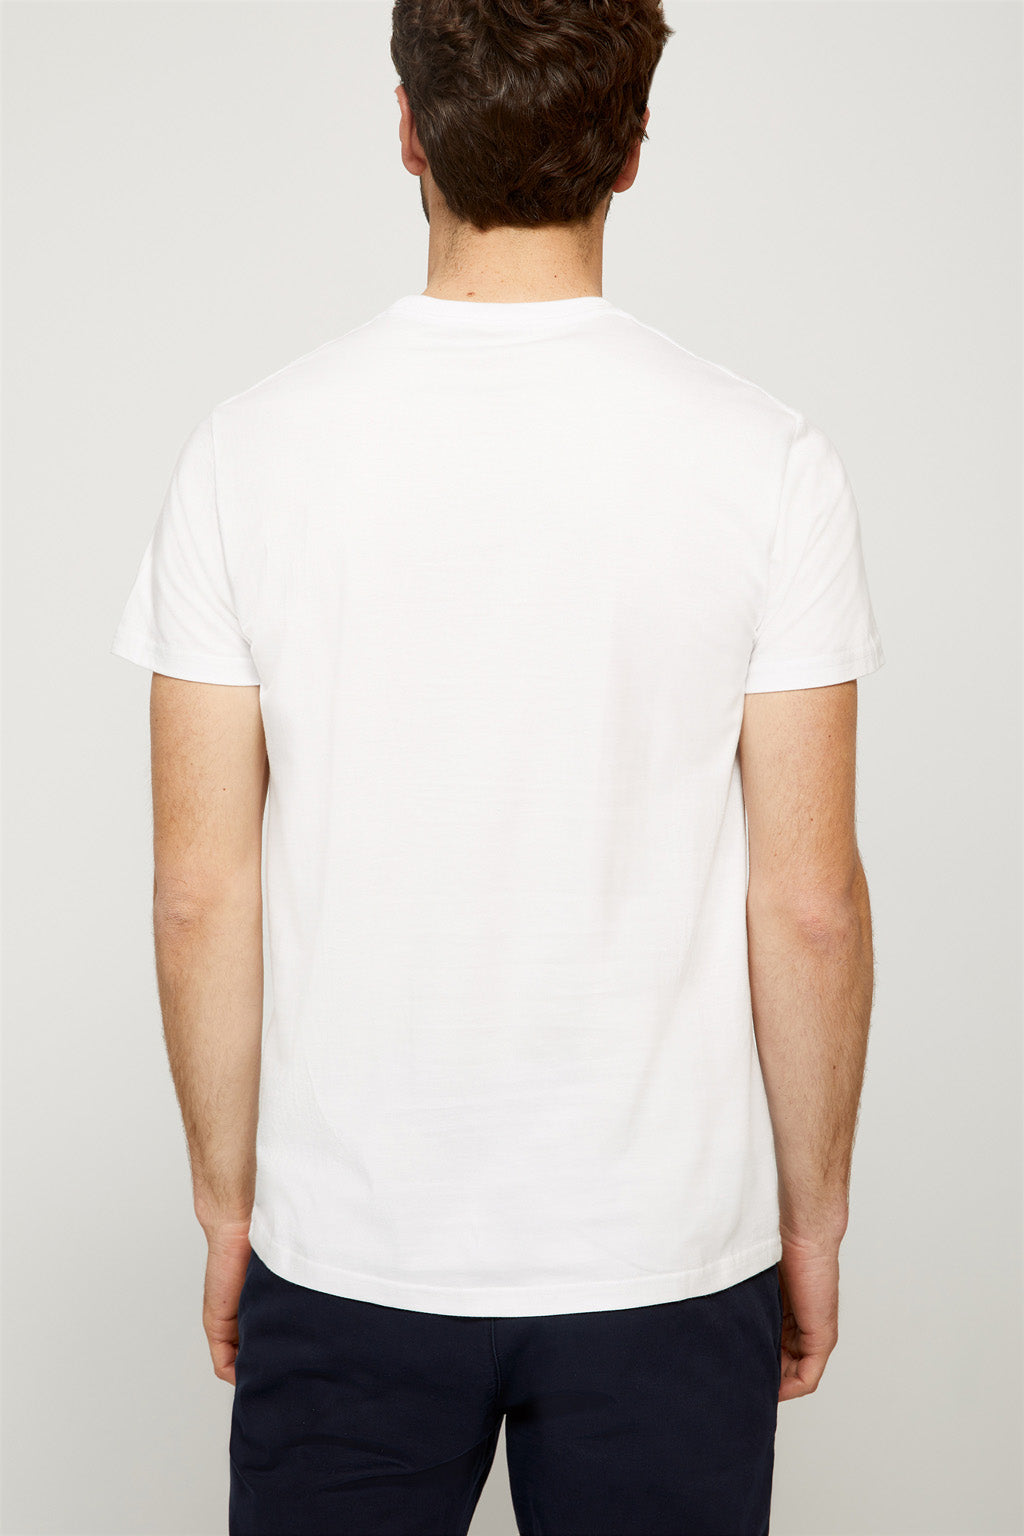 Printed white cotton tee